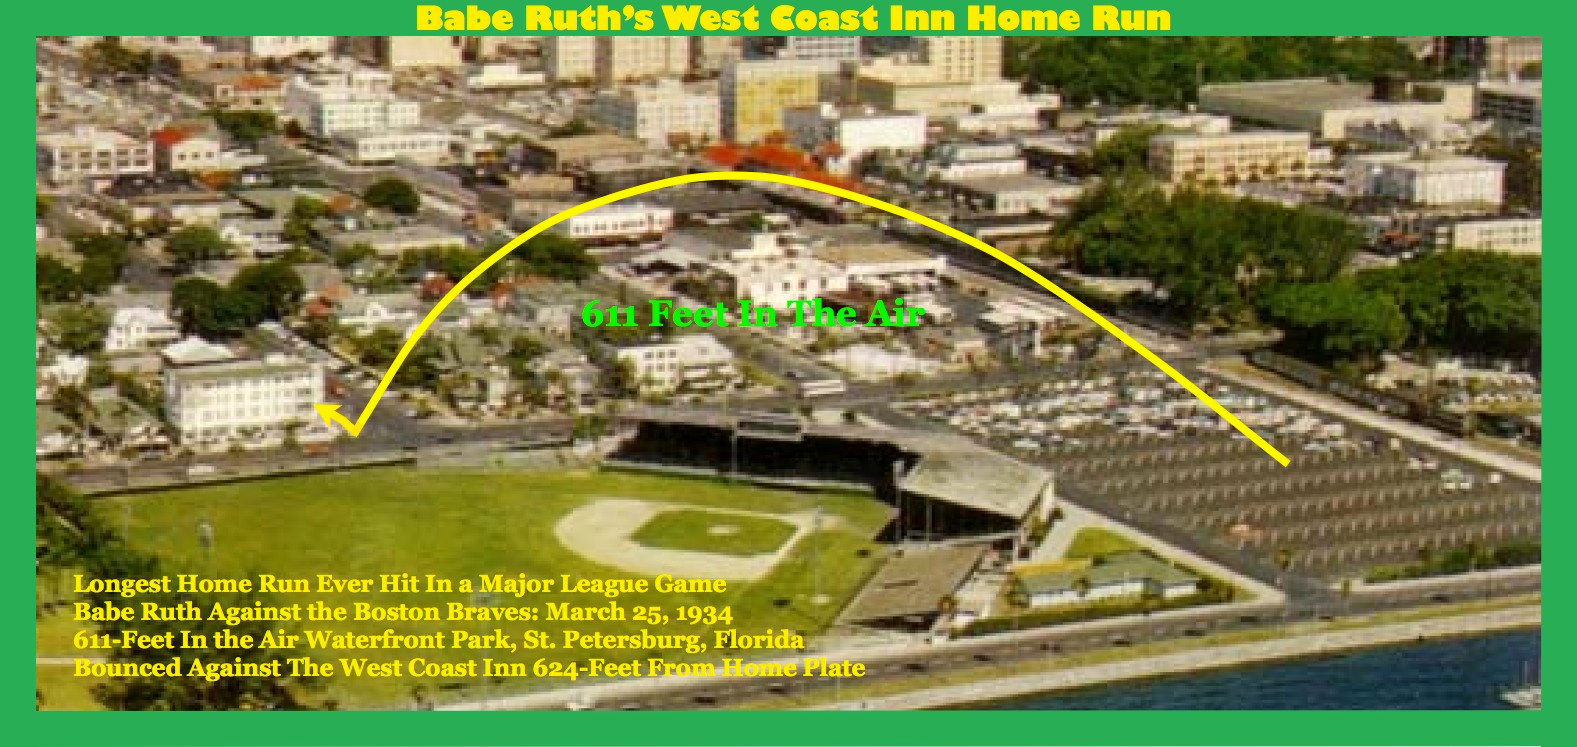 West Coast Inn Babe Ruth Home Run Graphic - Al Lang Field